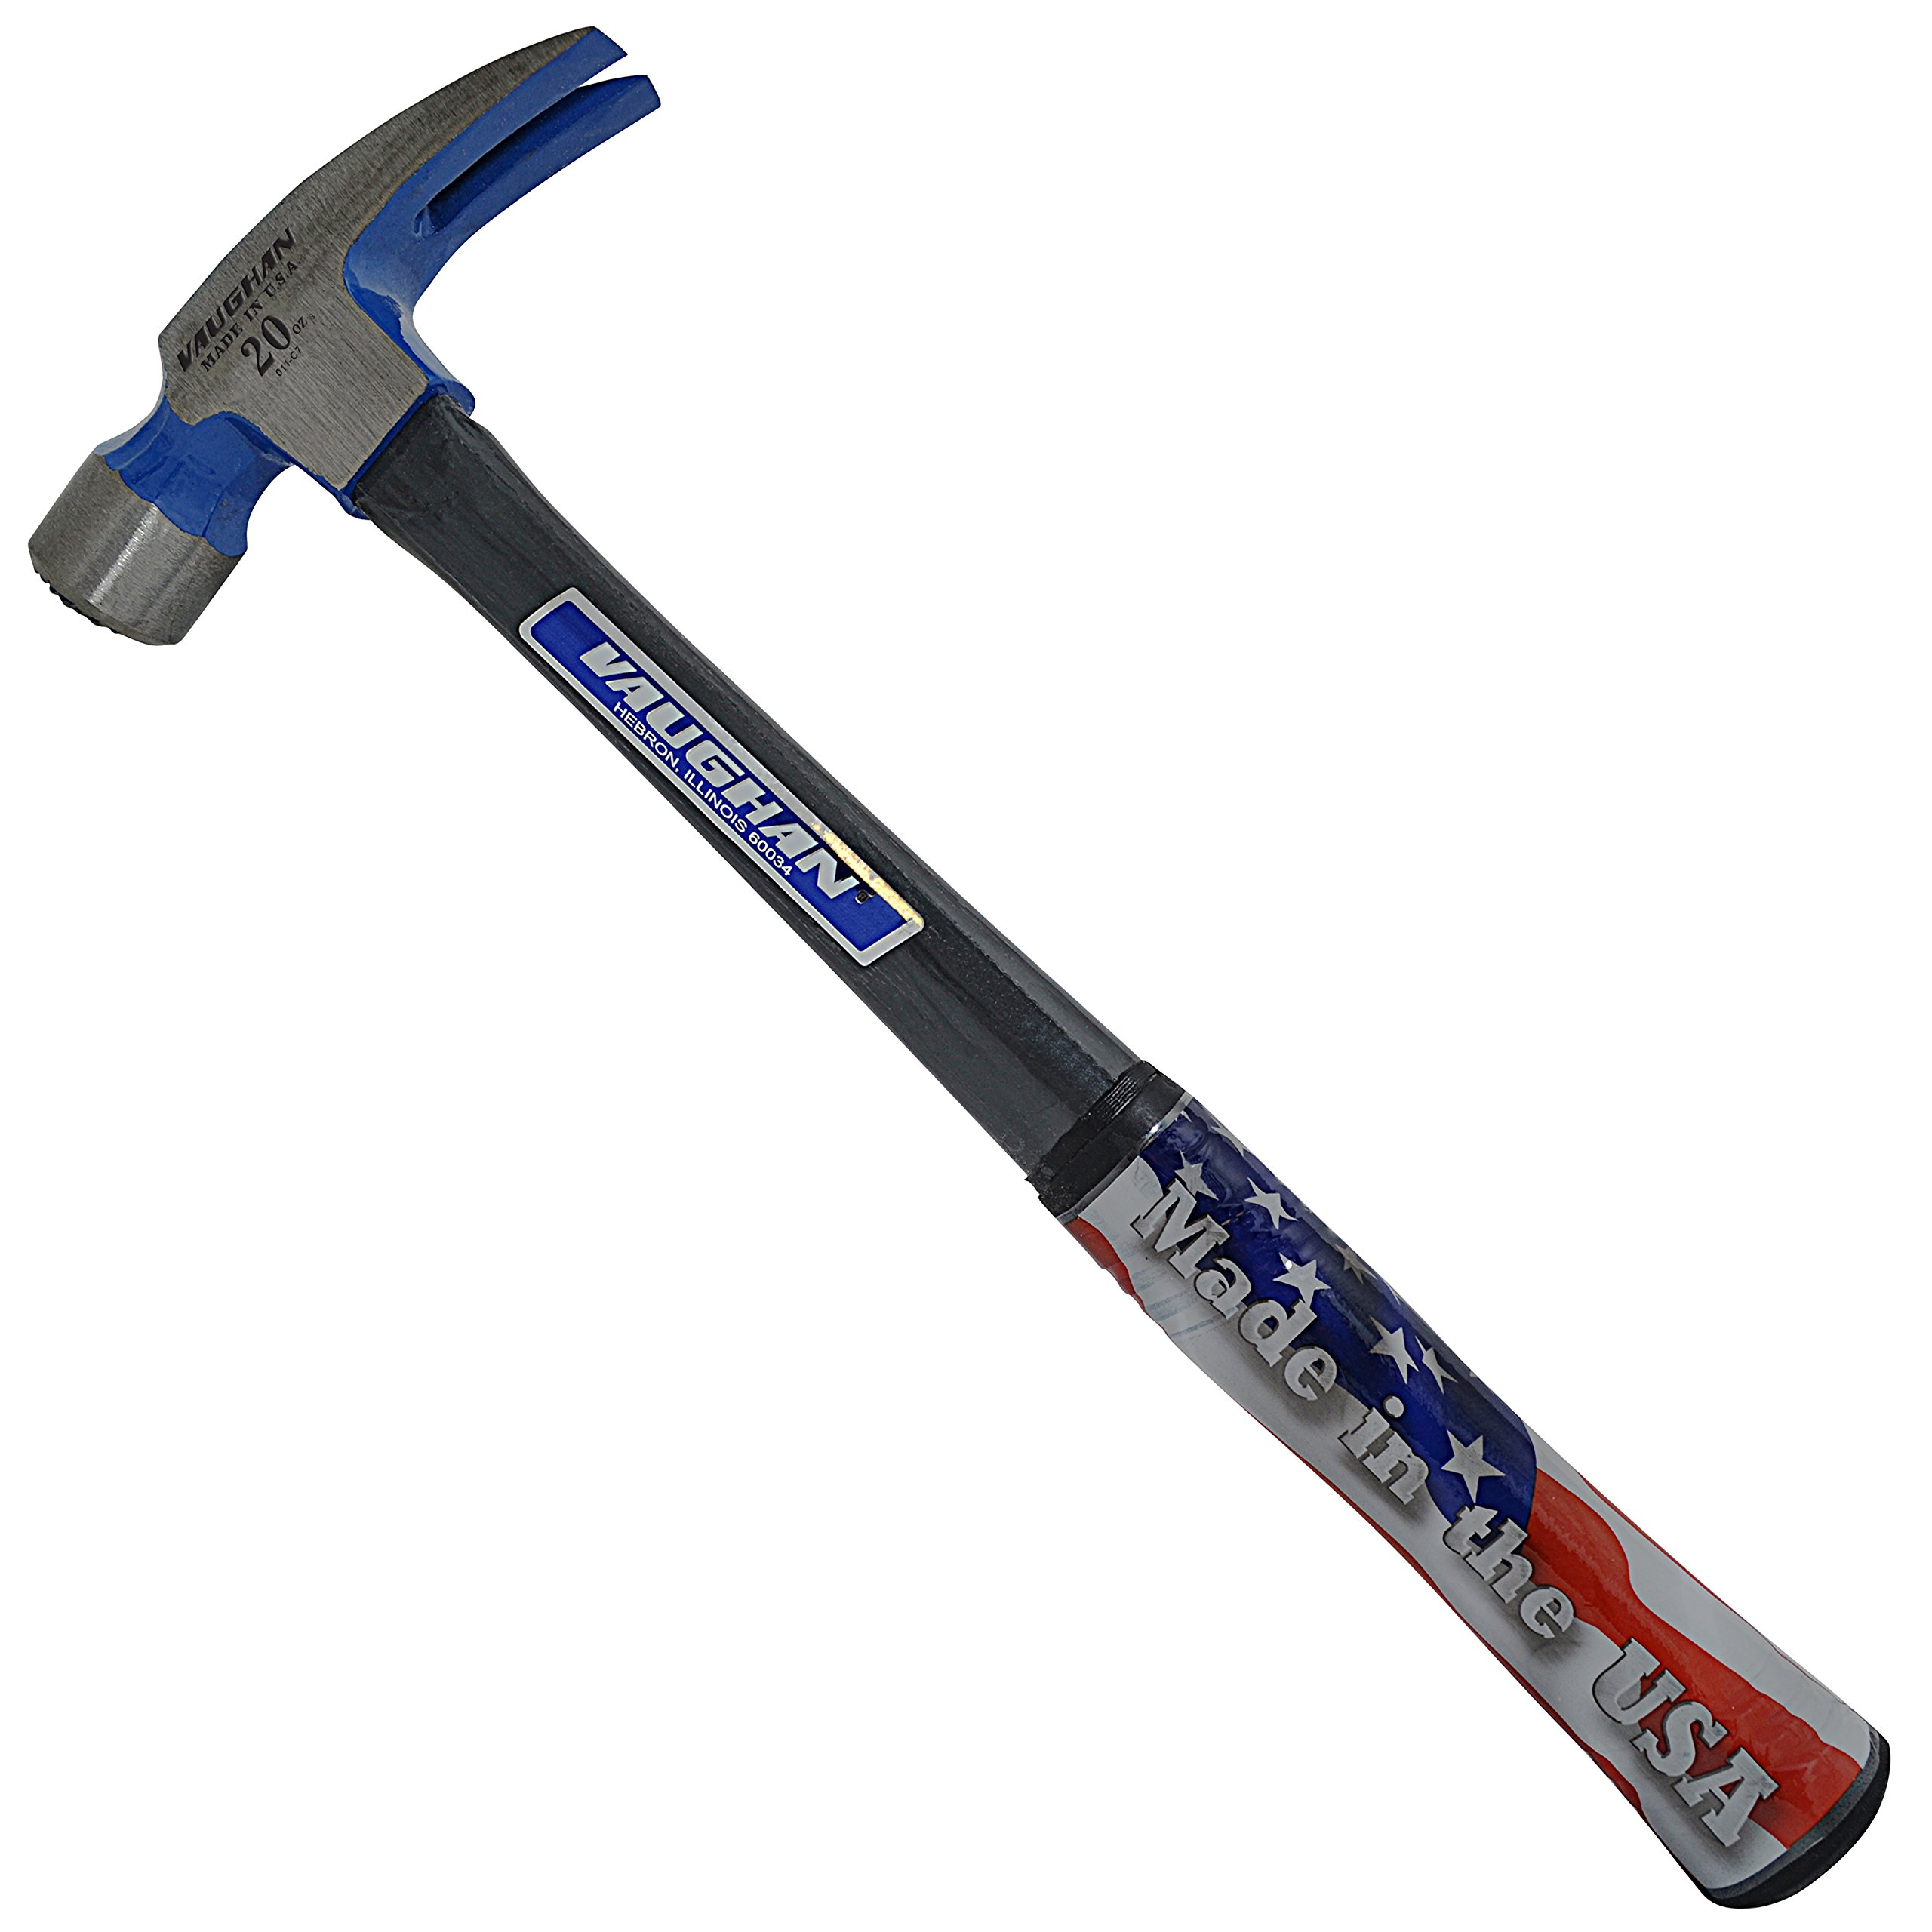 Vaughan FS999ML 20-Ounce -Inch999-Inch Straight Claw Hammer, Milled Face, Straight Fiberglass Handle, 16-Inch Long